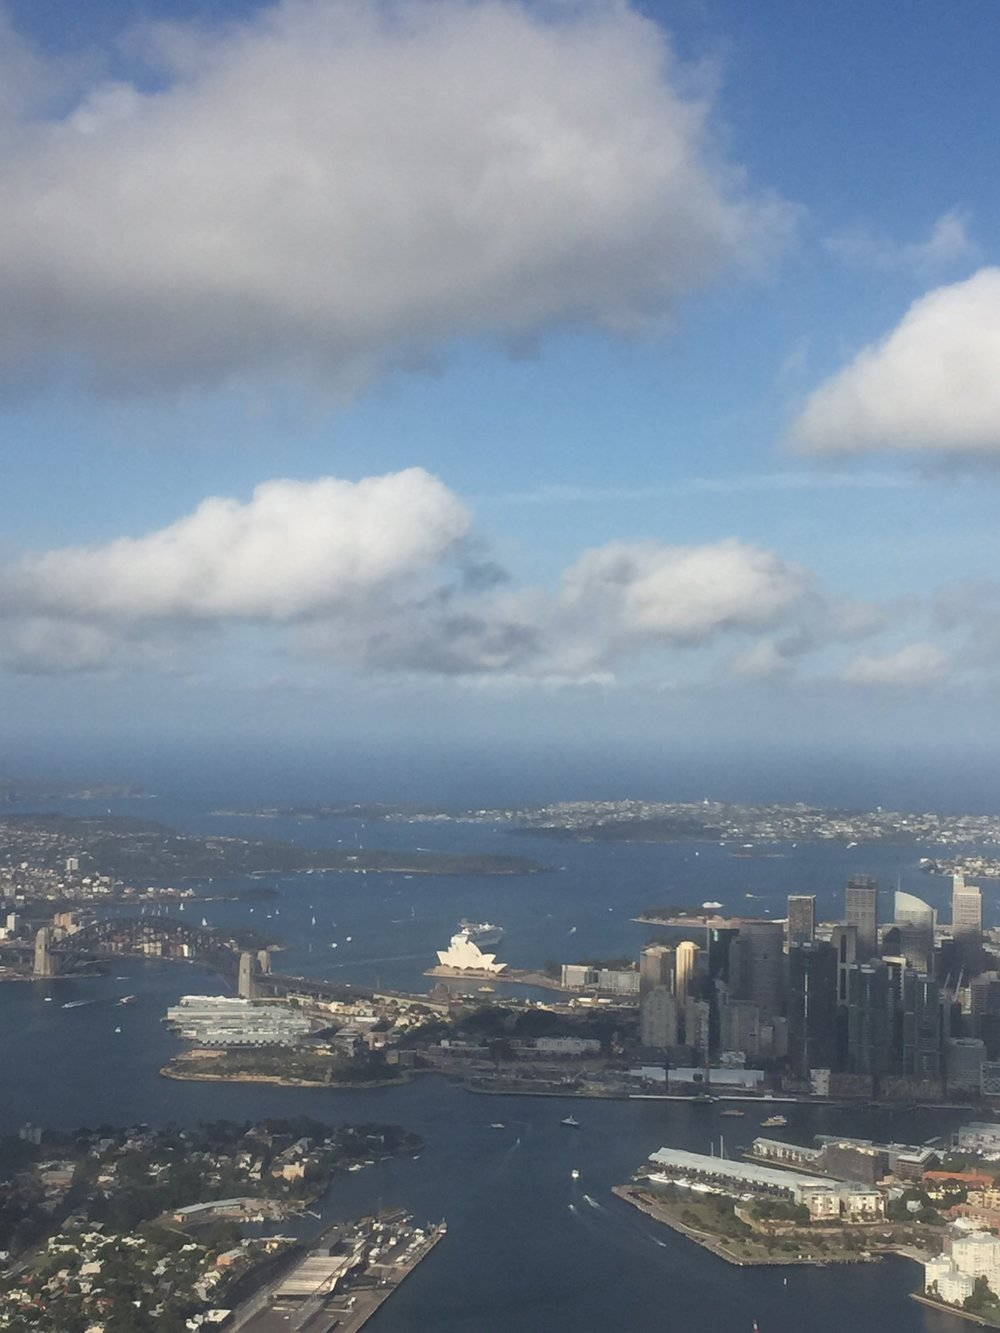 View of the Opera House from the plane arriving in Sydney